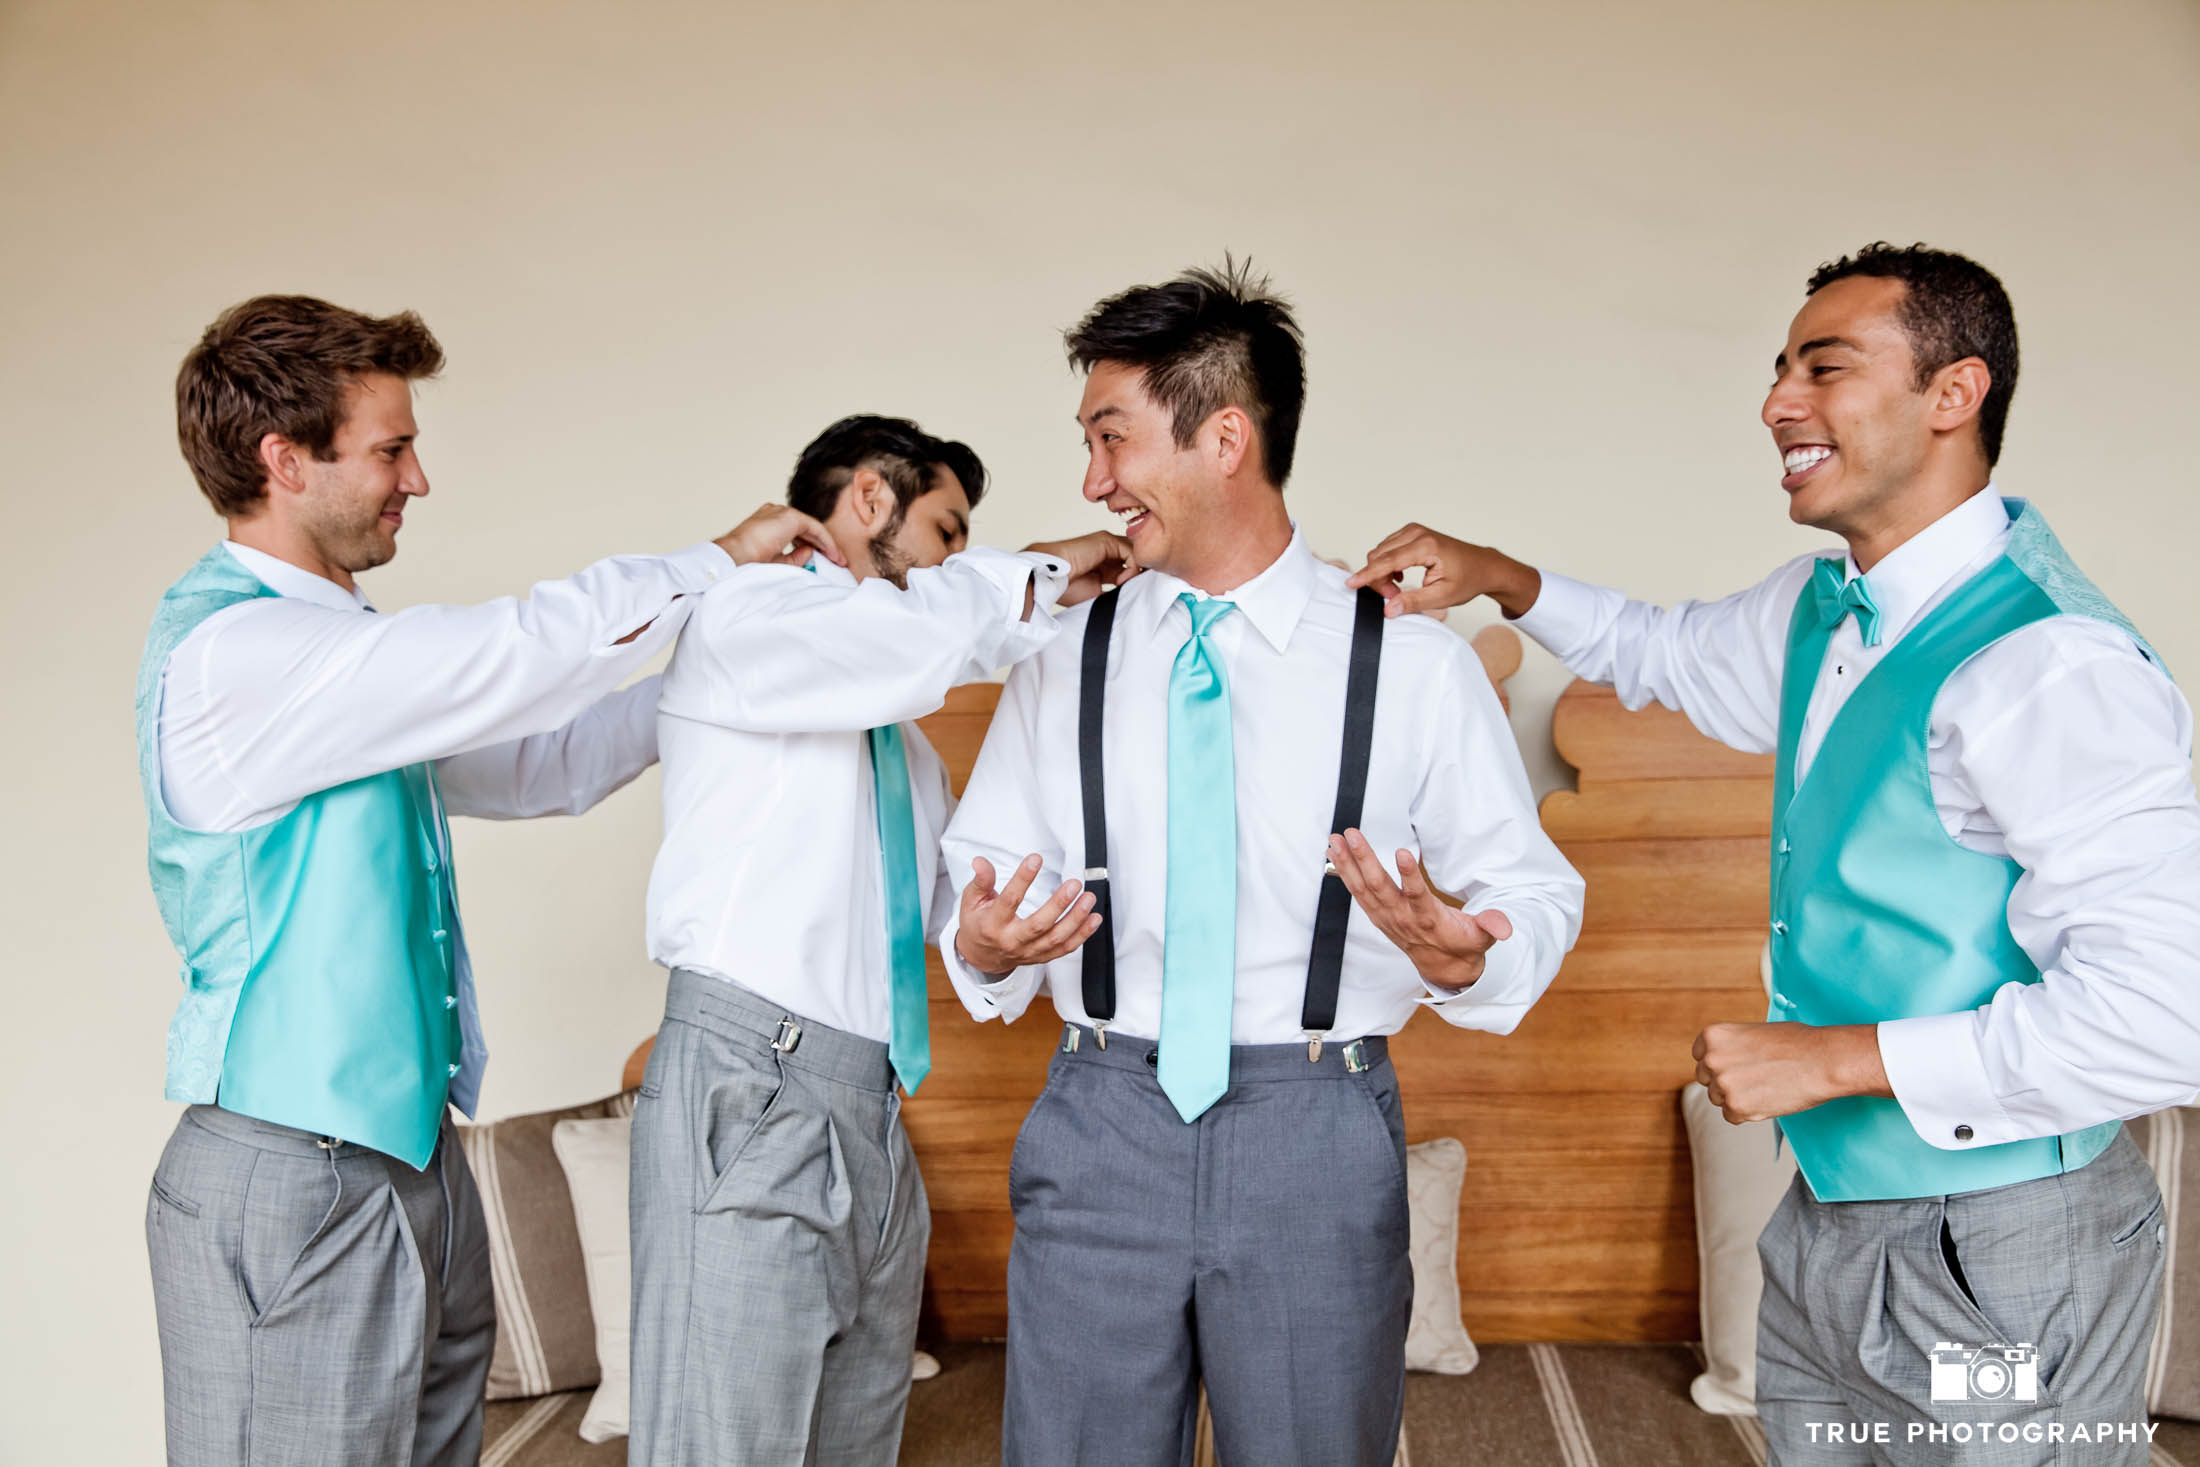 Groomsmen help the groom with his outfit